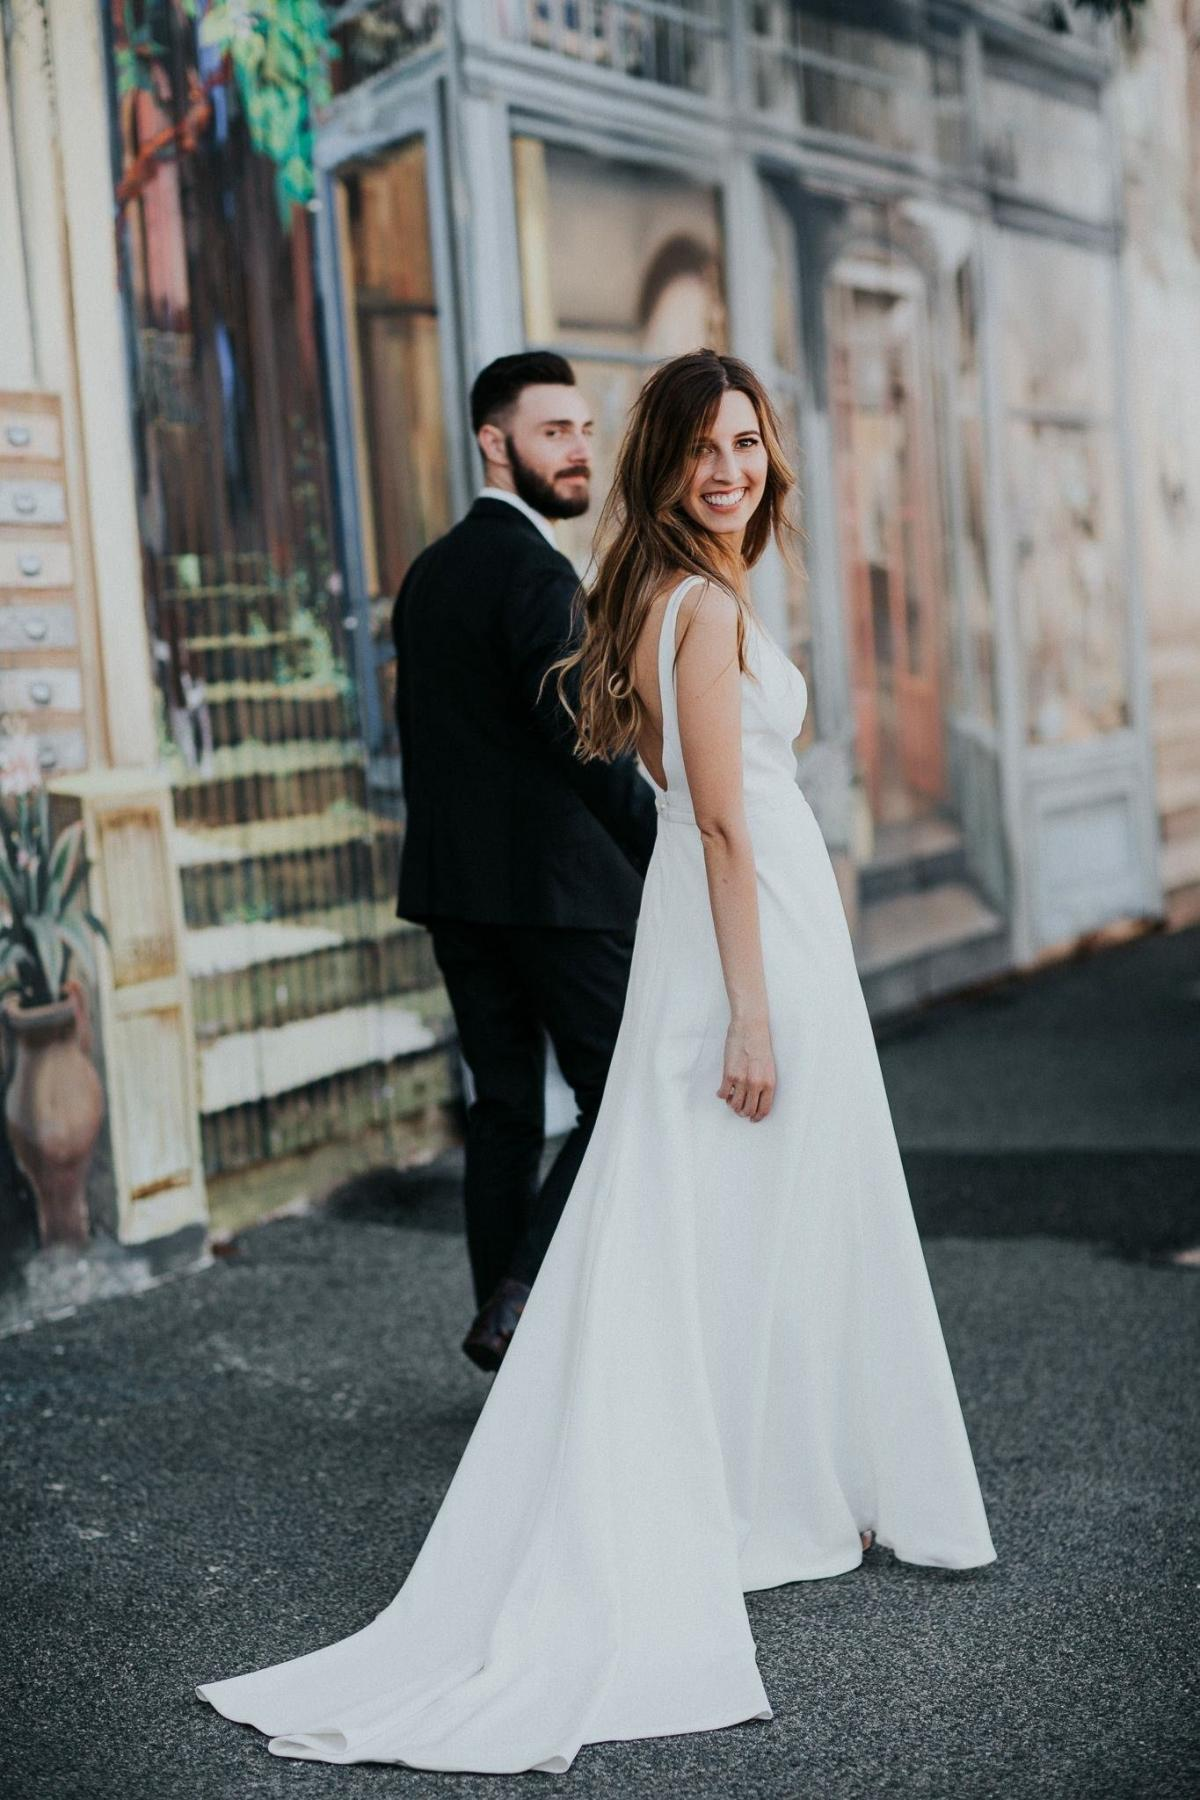 Read all about our real bride's wedding in this blog. She wore the Wild Hearts Aubrey wedding dress by Karen Willis Holmes.